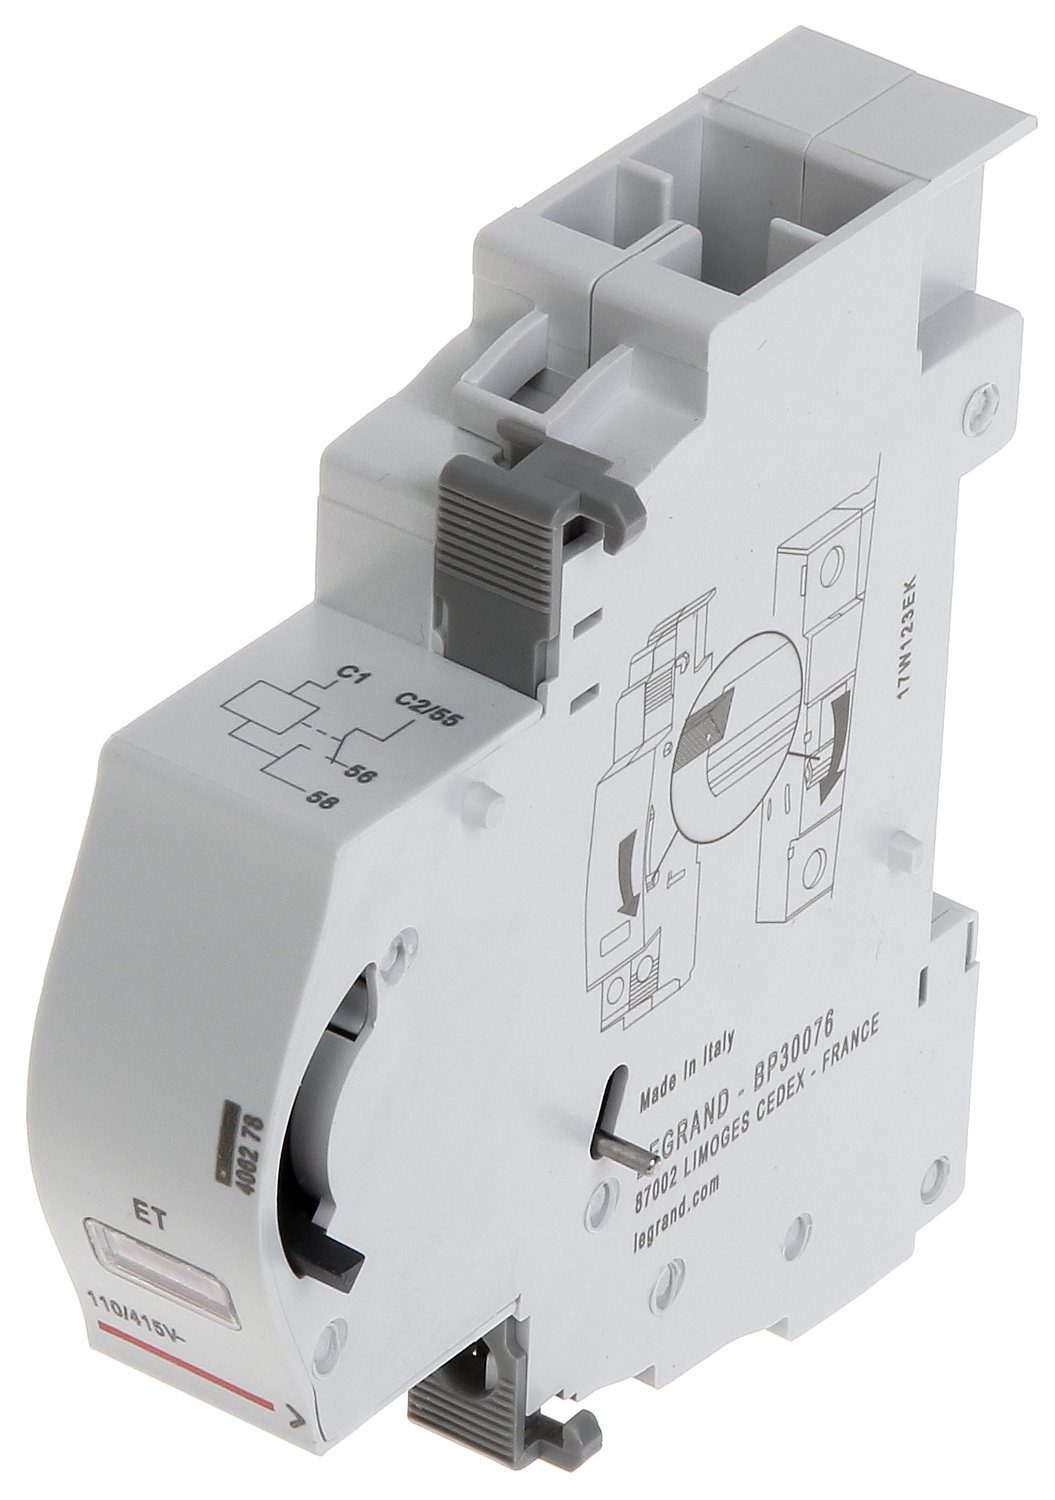 Shunt Trip Le 406278 For The Legrand Devices Of Tx Tripping Unit Circuit Breaker Tx3 Dx3 Fr300 Frx300 Frx400 Series